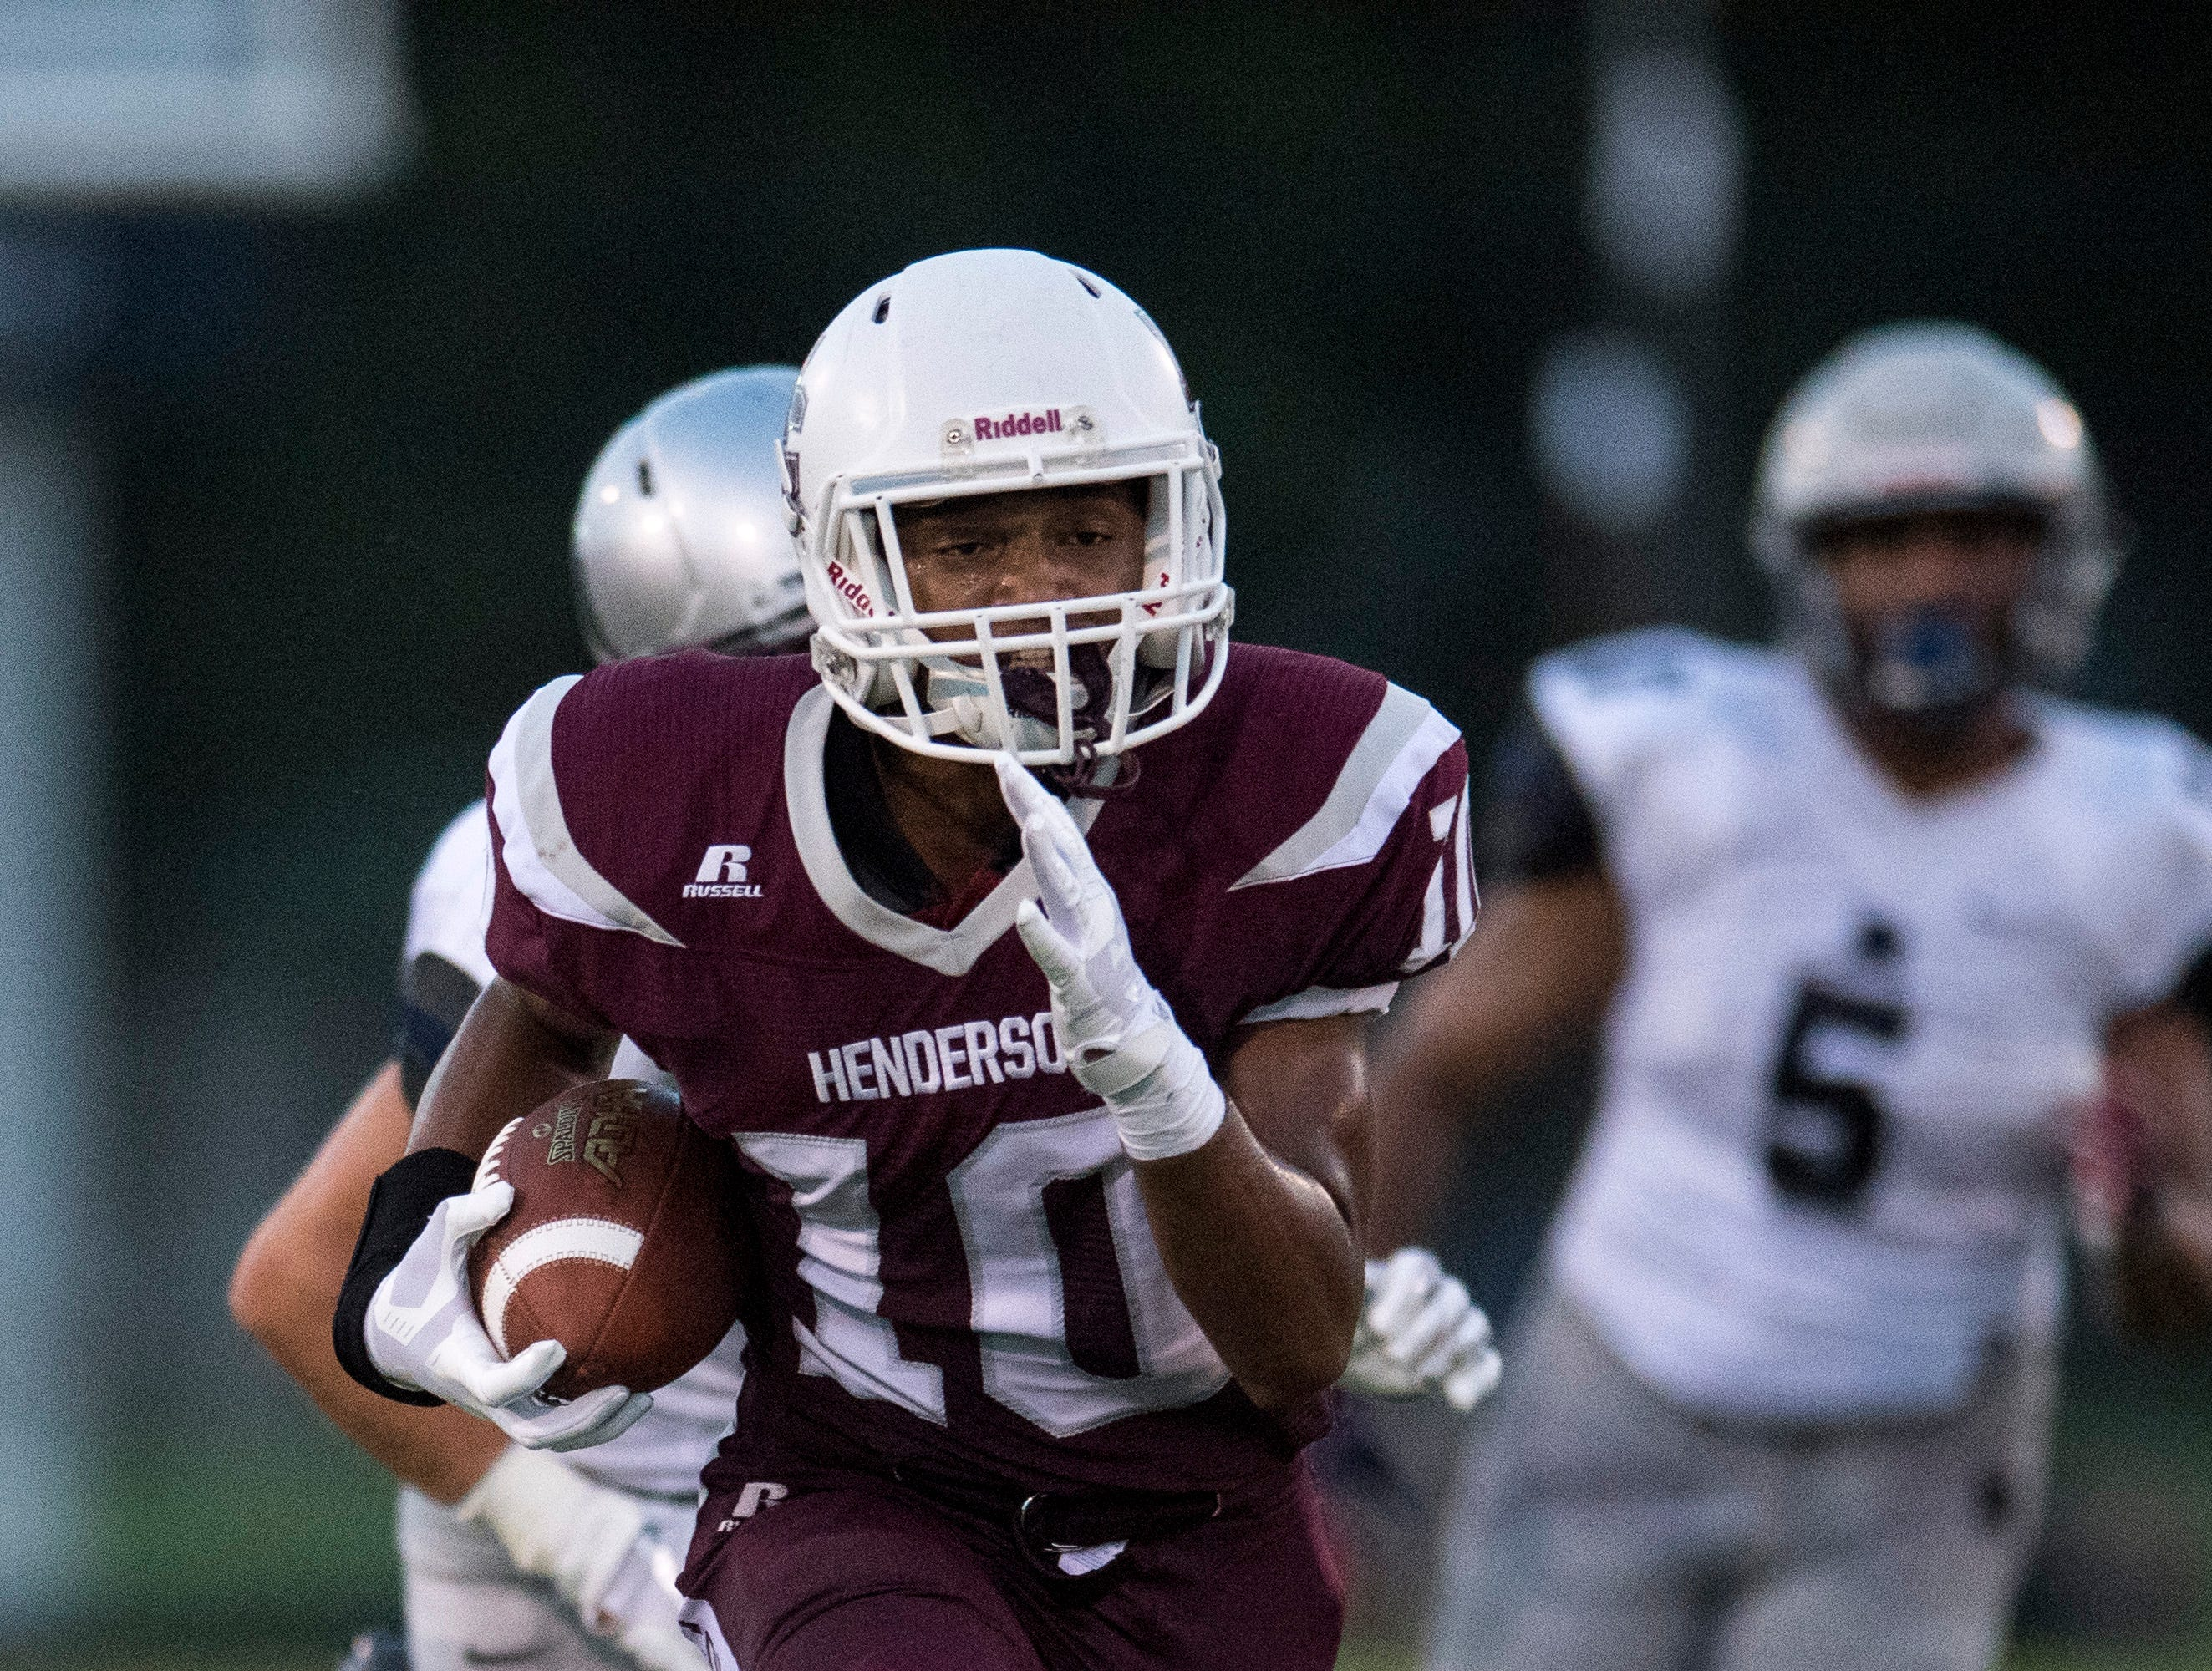 Henderson's Daymian Dixon (10)  runs the ball during the Reitz vs Henderson County game at Colonel Stadium Friday, August 17, 2018. The Panthers defeated the Colonels 41-35 in the season opening game.